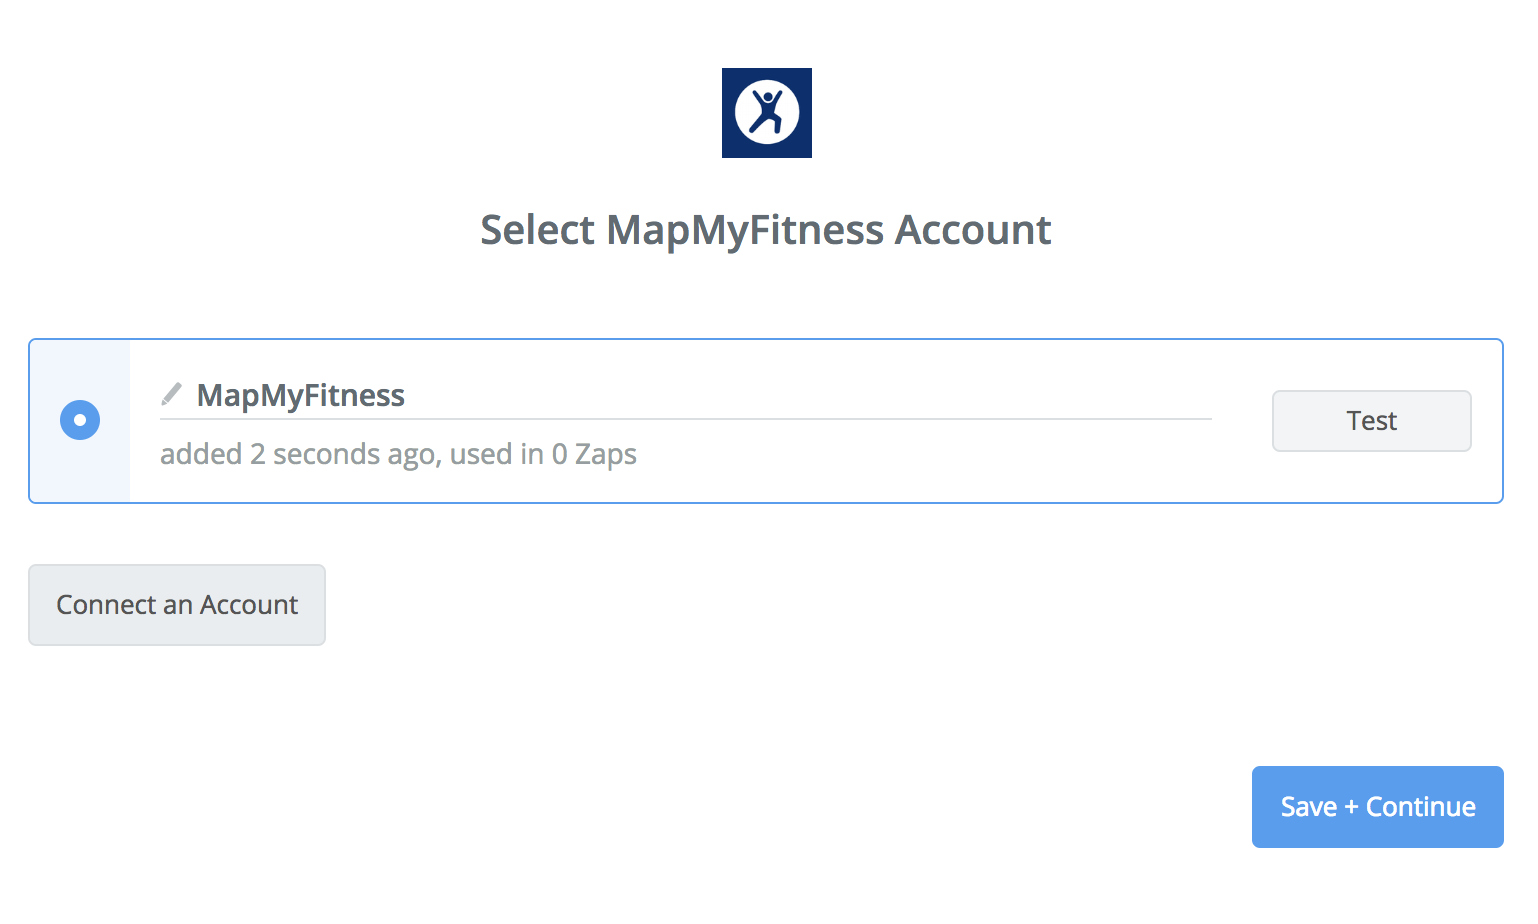 MapMyFitness connection successfull